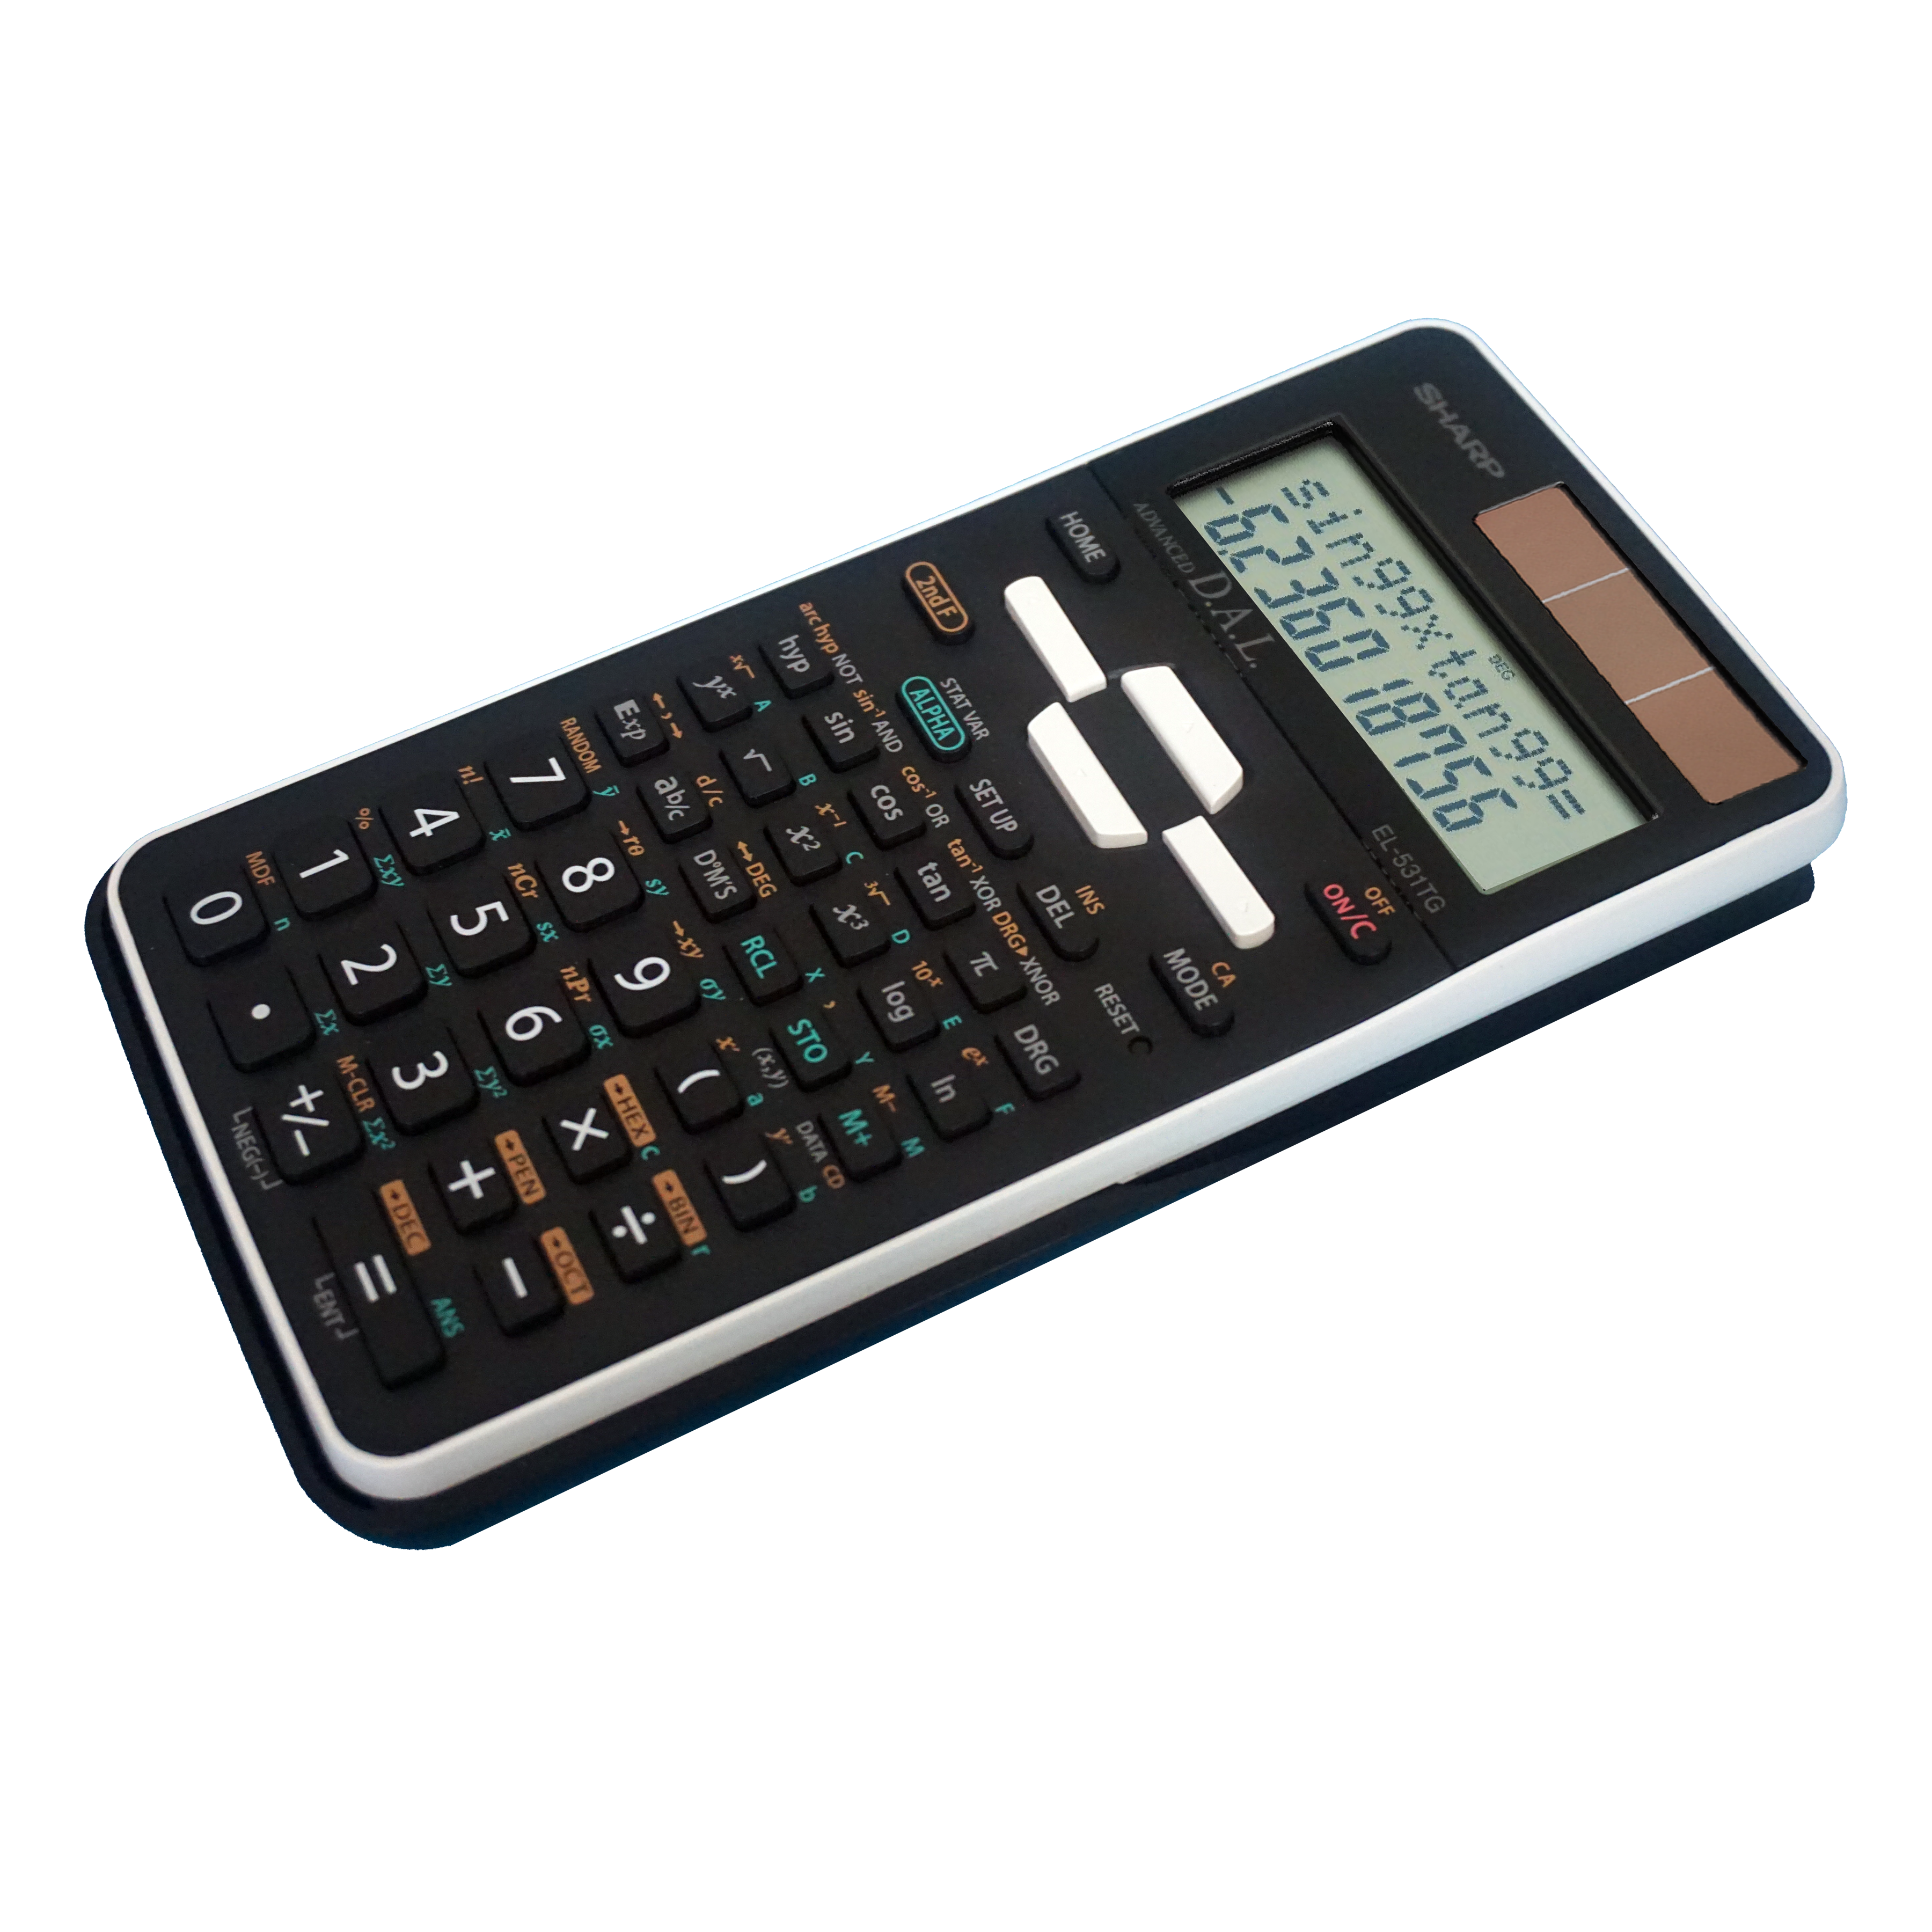 Sharp EL-531TGBBW 12-Digit Scientific//Engineering Calculator with Protective Hard Cover Black,Black and White Battery and Solar Hybrid Powered LCD Display Great for Students and Professionals